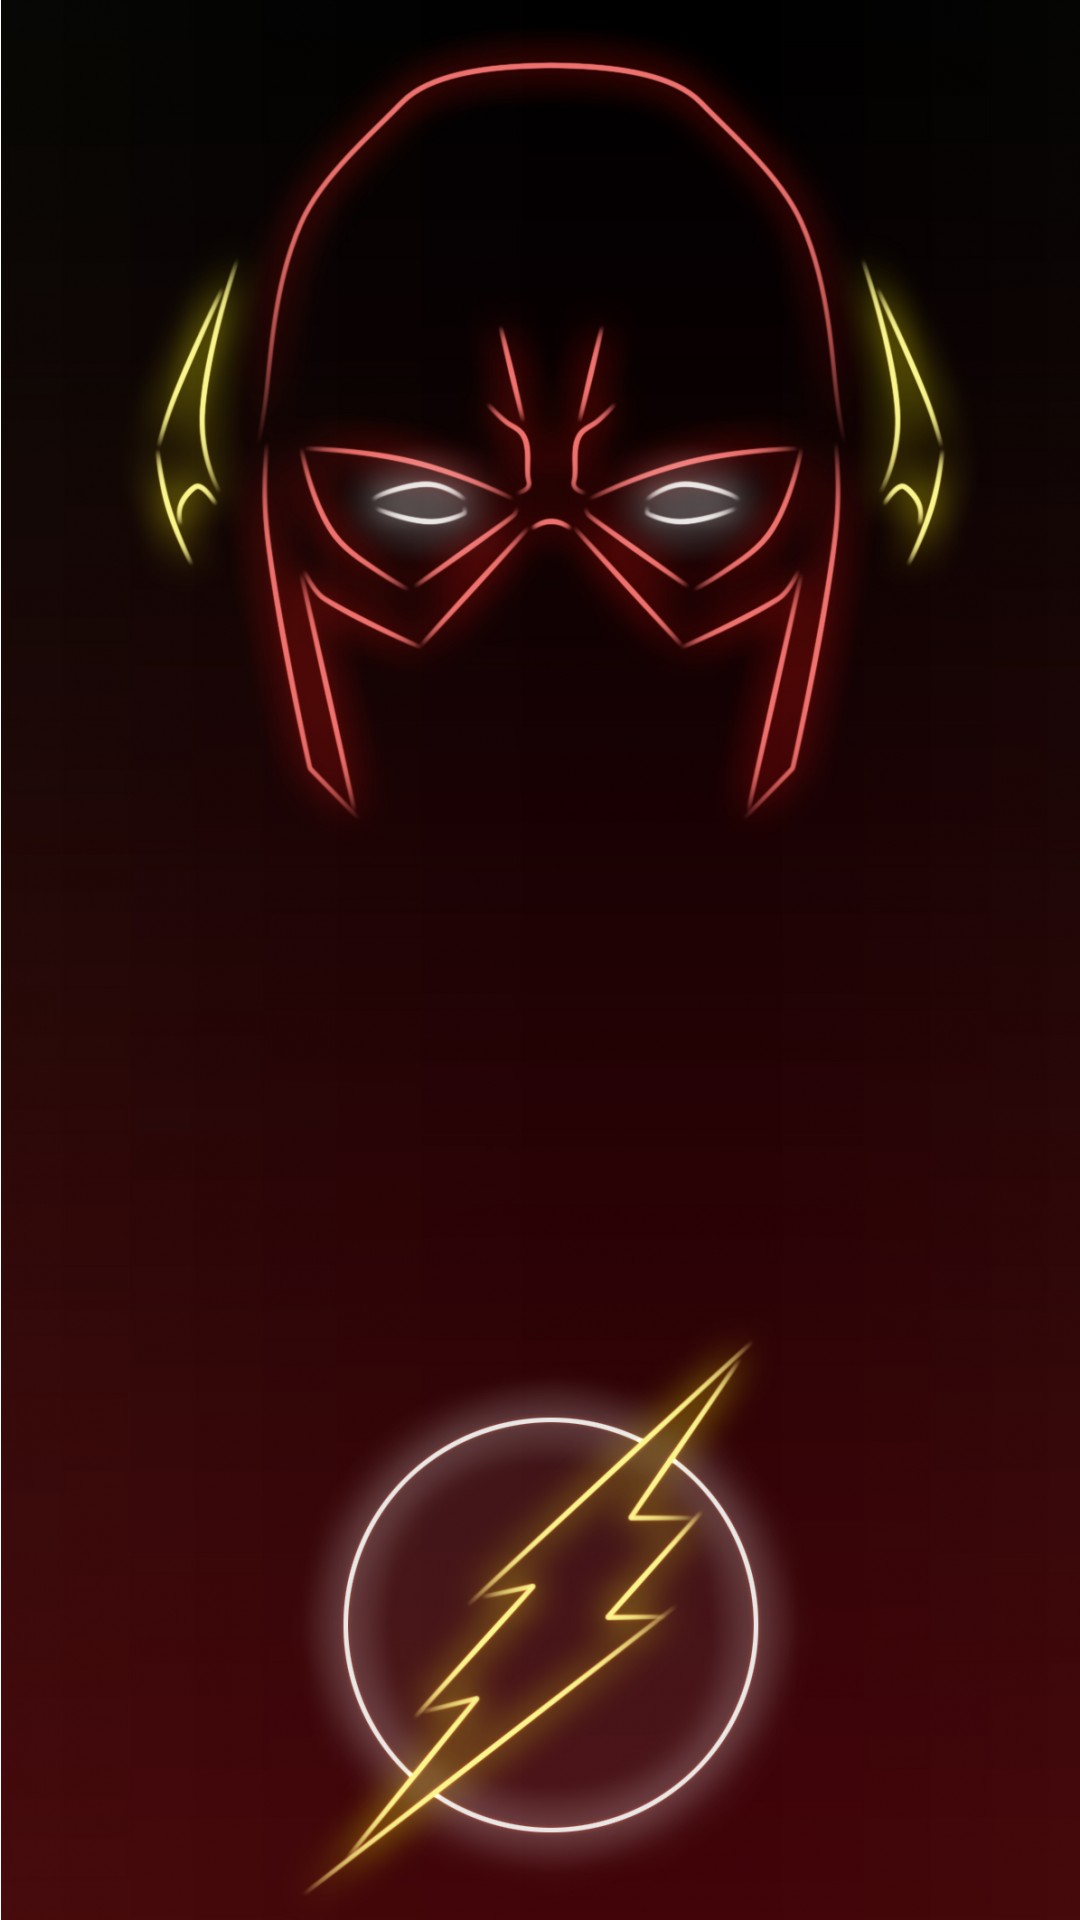 Neon-Light-The-Flash-1080-x-1920-available-for-free-download-wallpaper-wp3808561